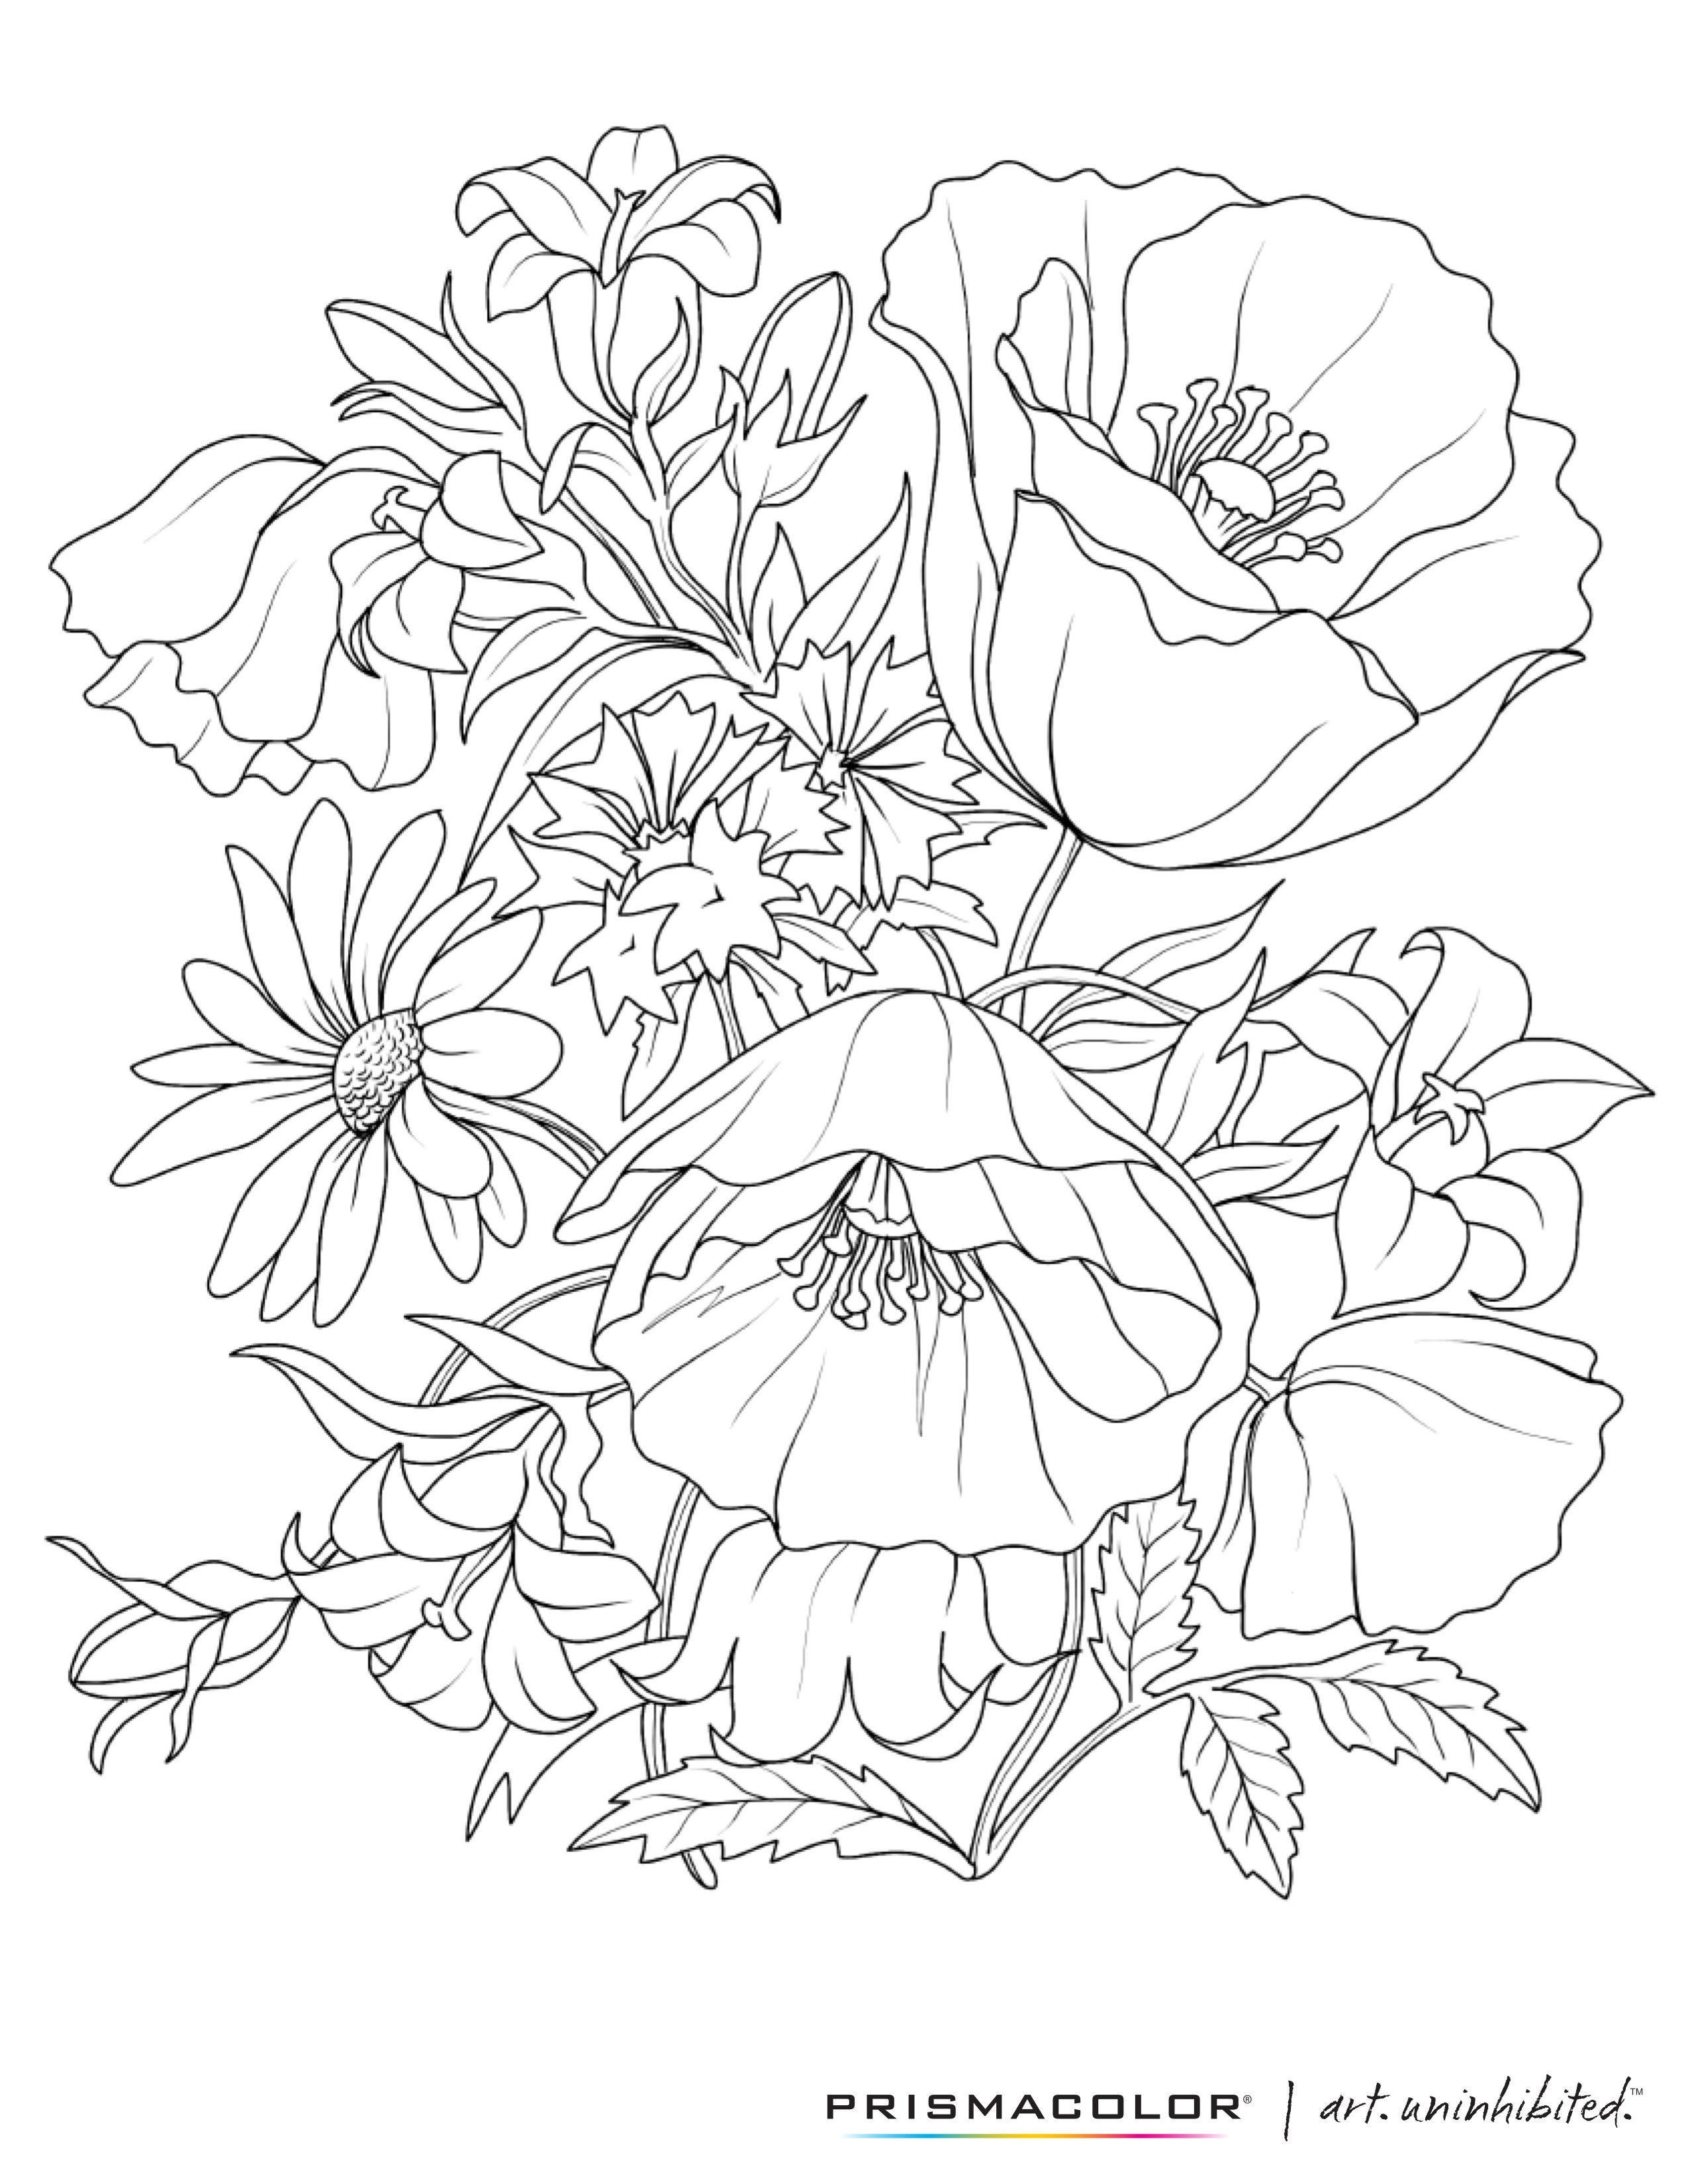 What A Beautiful Flower Adult Coloring Page! | Pared Mandala